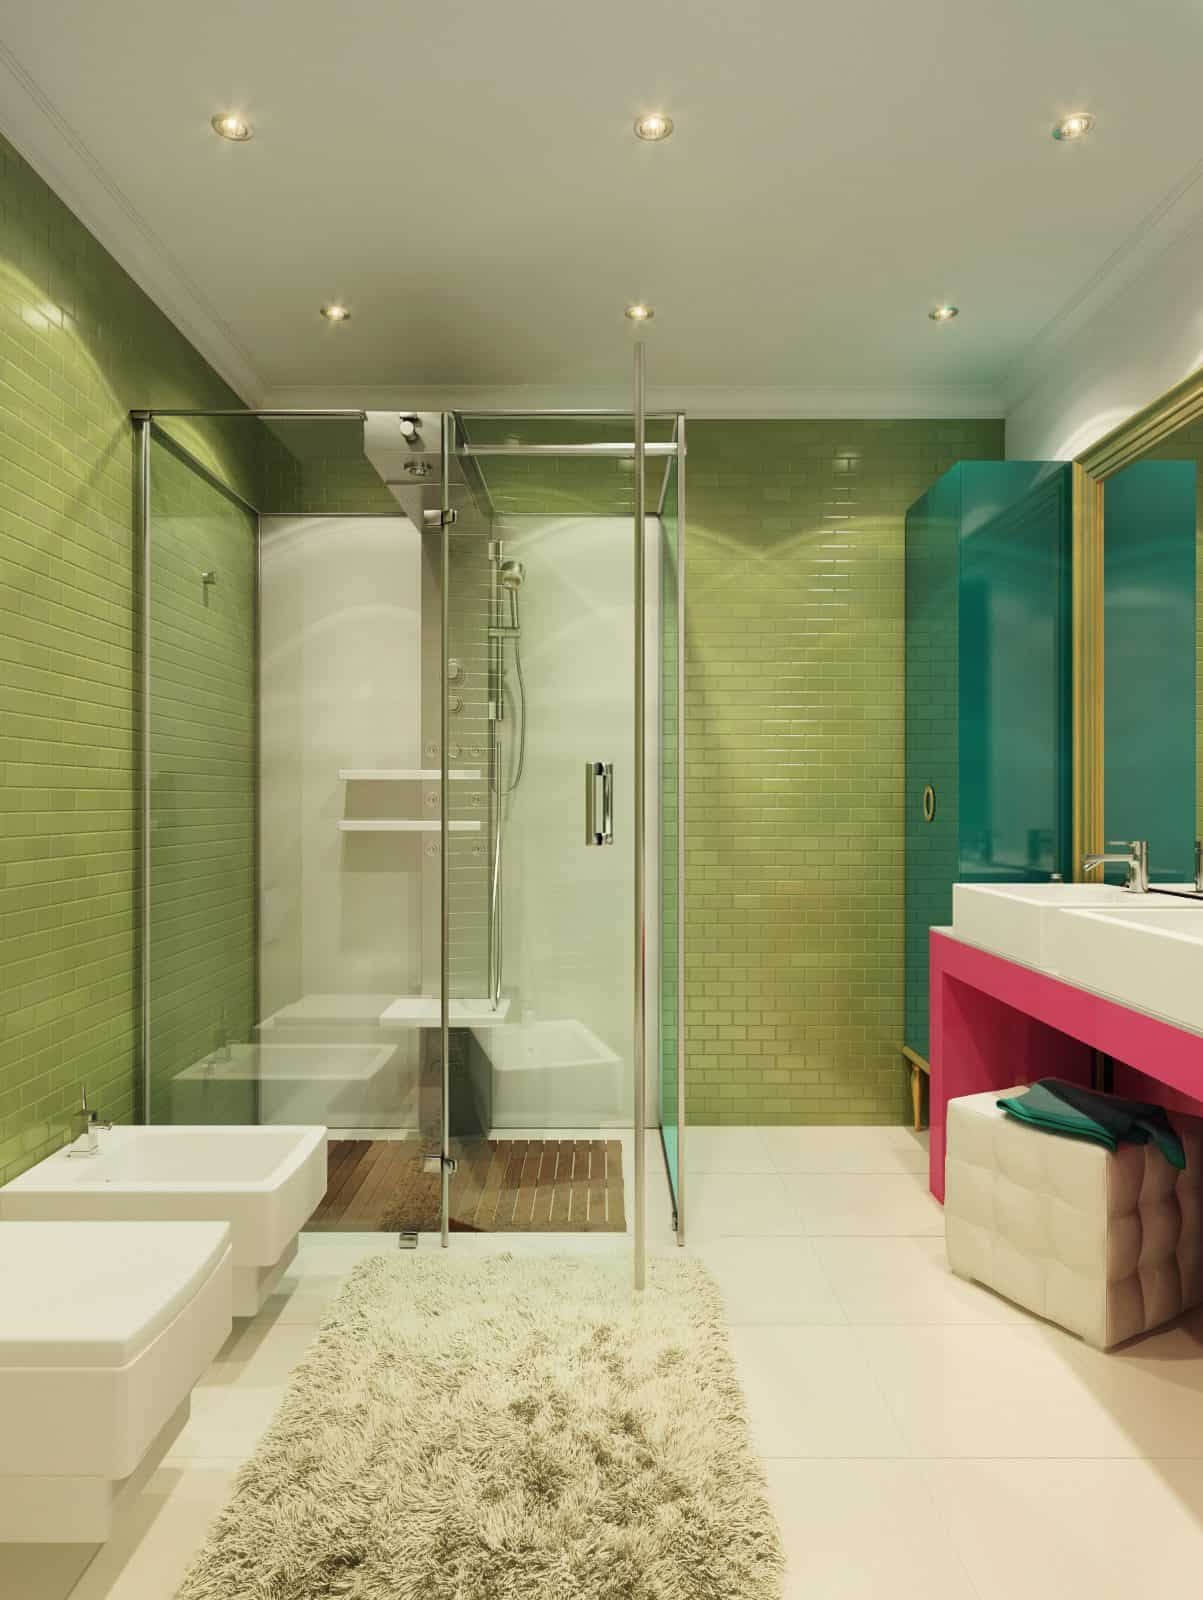 Pop Art Style Apartment Decorating Cacophony Of Color - Bathroom remake